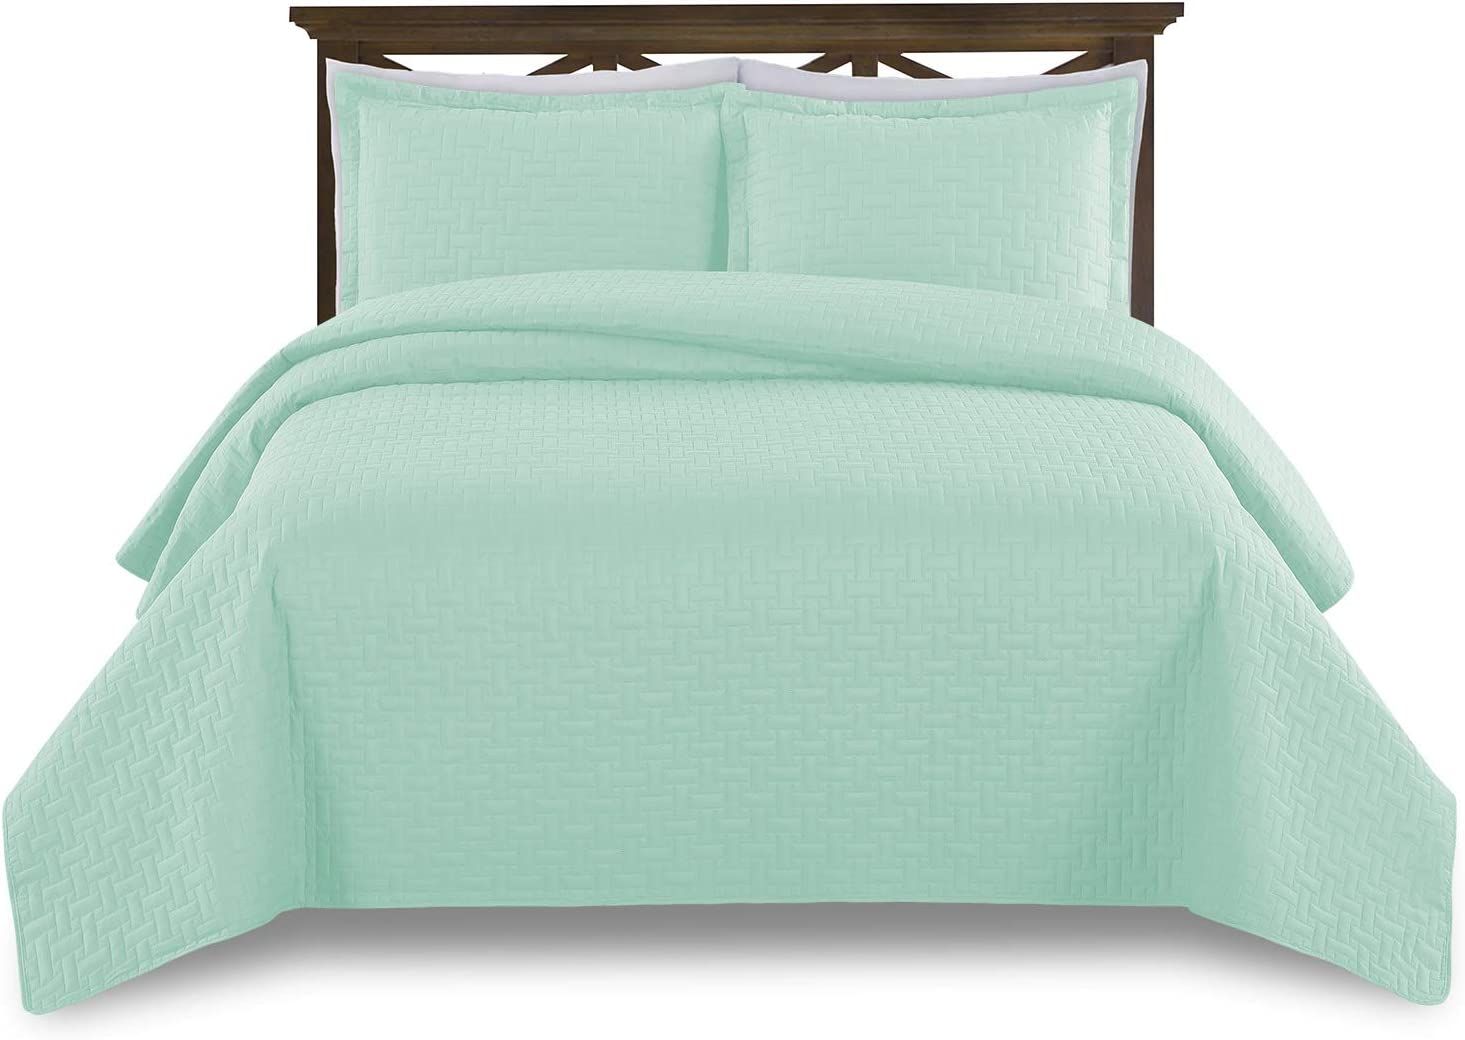 Comfy Basics Prime Bedding Manchester 3-piece Oversized Quilted Bedspread Coverlet Set (Mint, Queen)